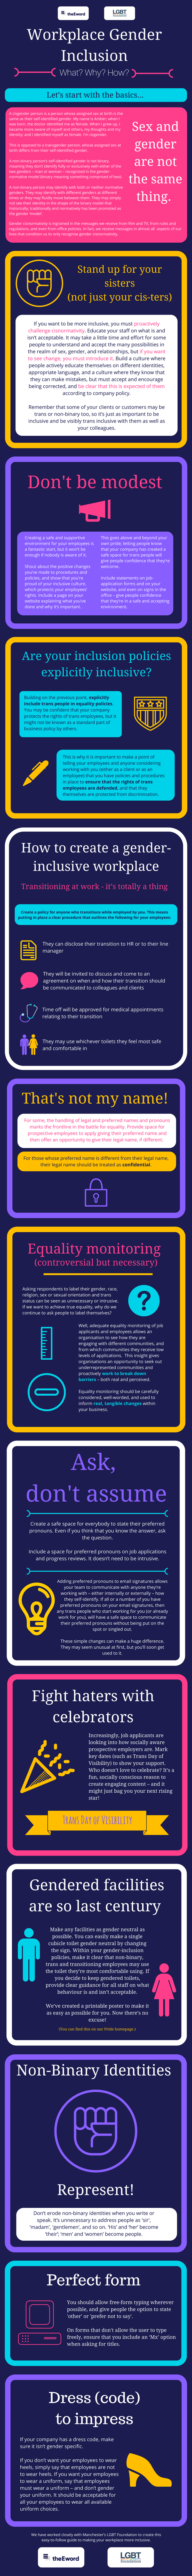 Workplace Gender Inclusion